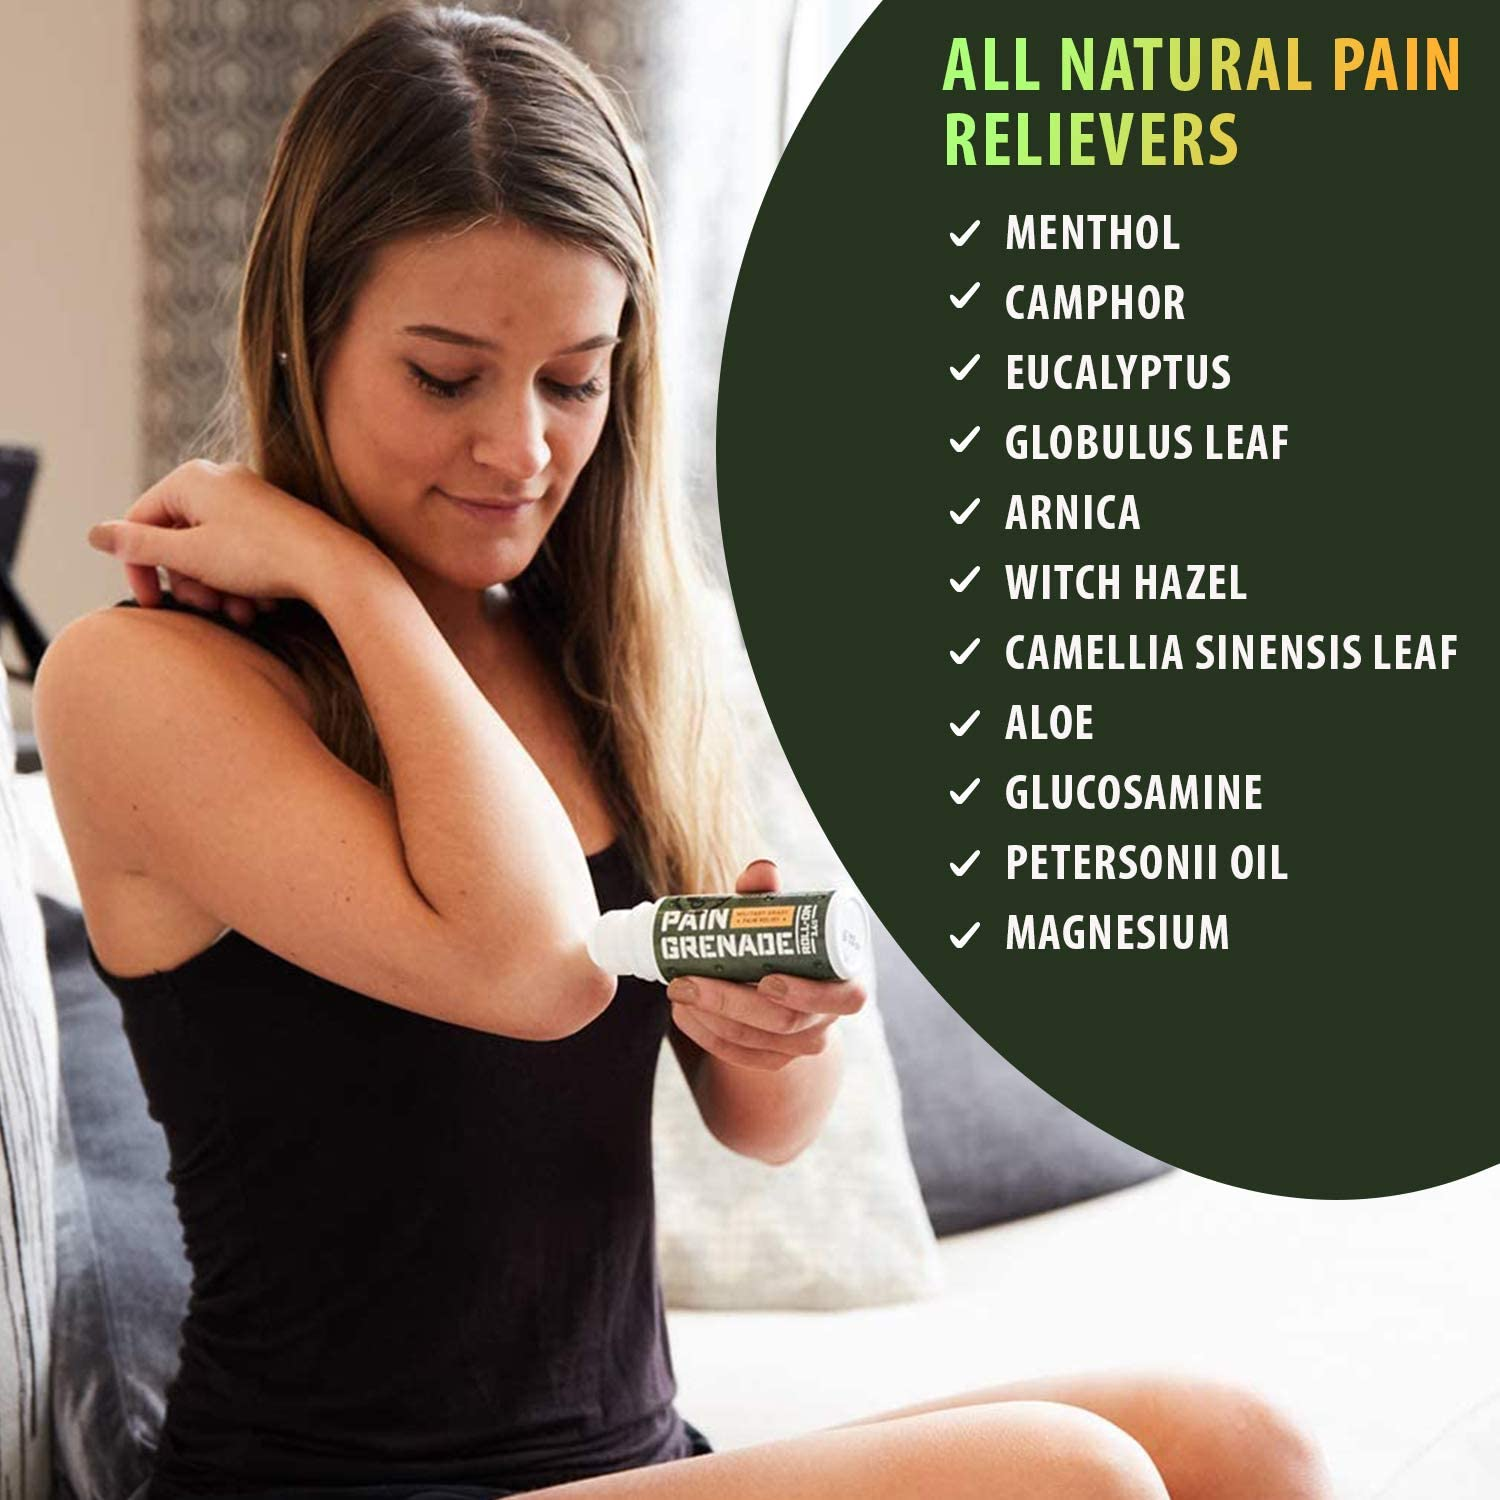 Pain Relieving Gel by Pain Grenade - Arthritis, Back Pain Therapy, Muscle Ache Cream – Cooling and Warming with Arnica, Menthol, Camphor